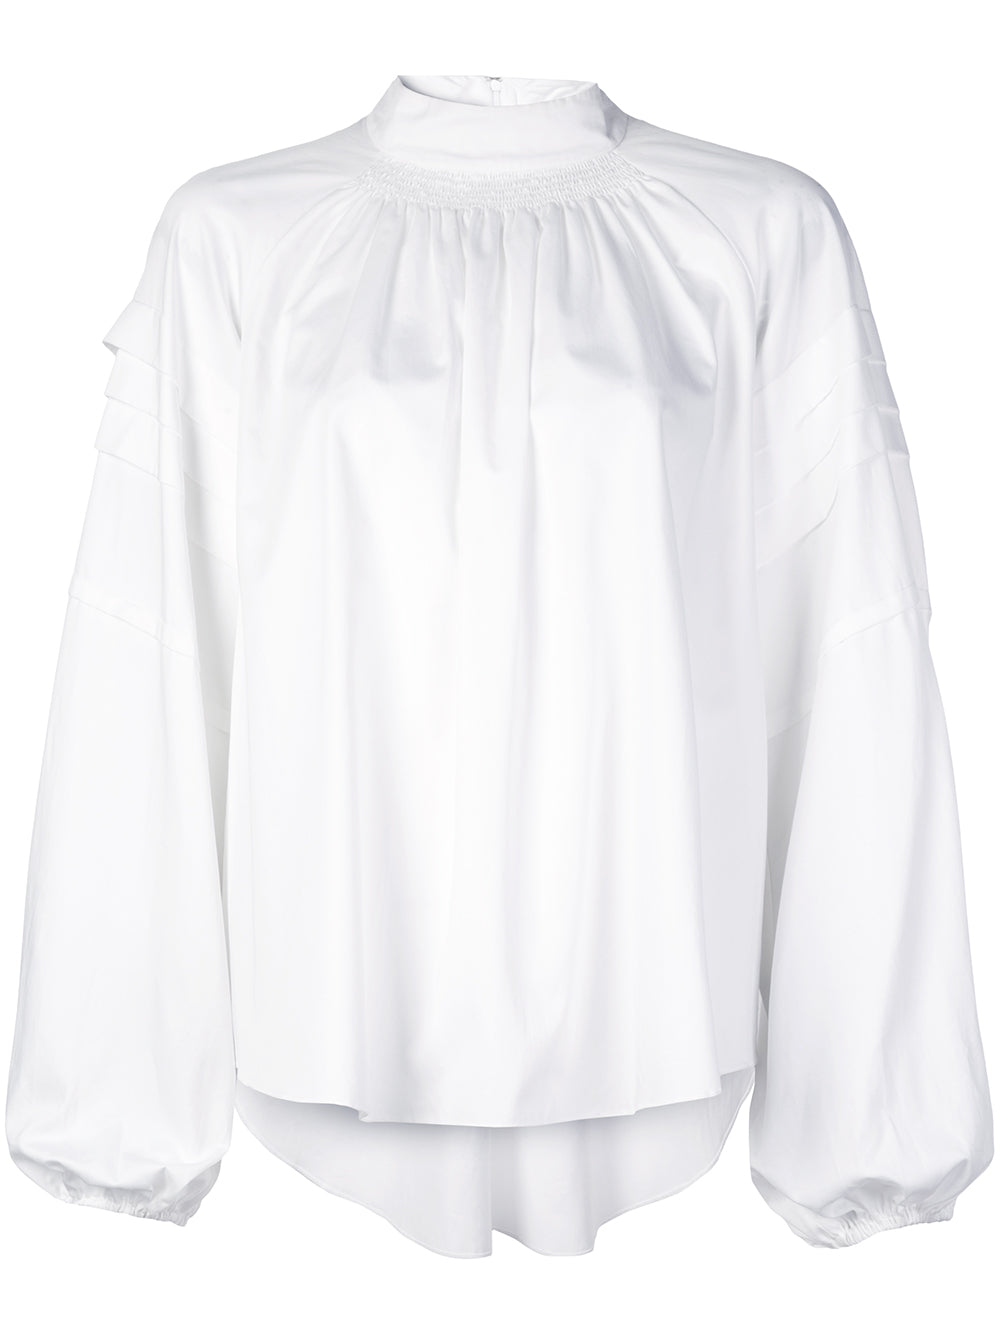 COTTON POPLIN SMOCKED BLOUSE